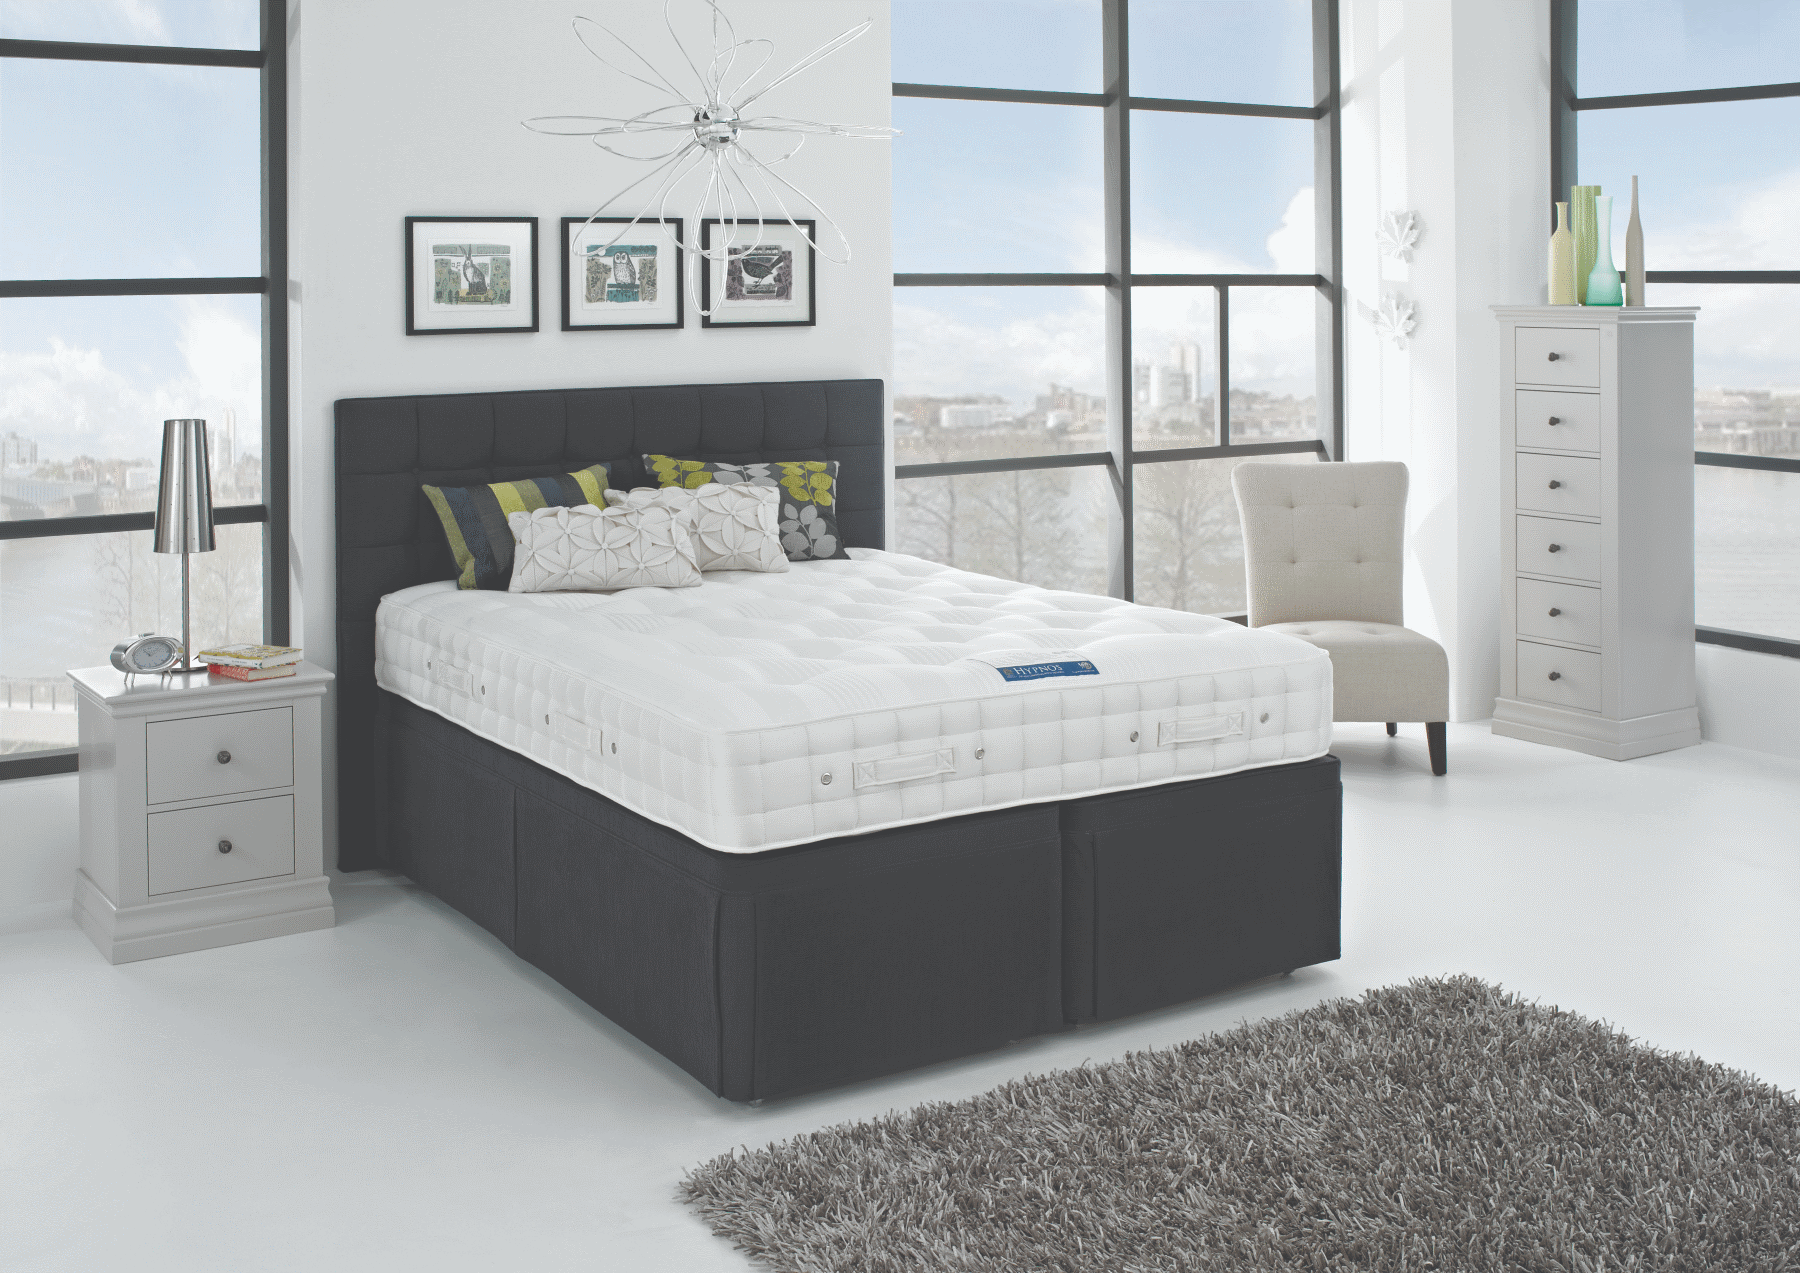 Hypnos Orthocare 10 Mattress